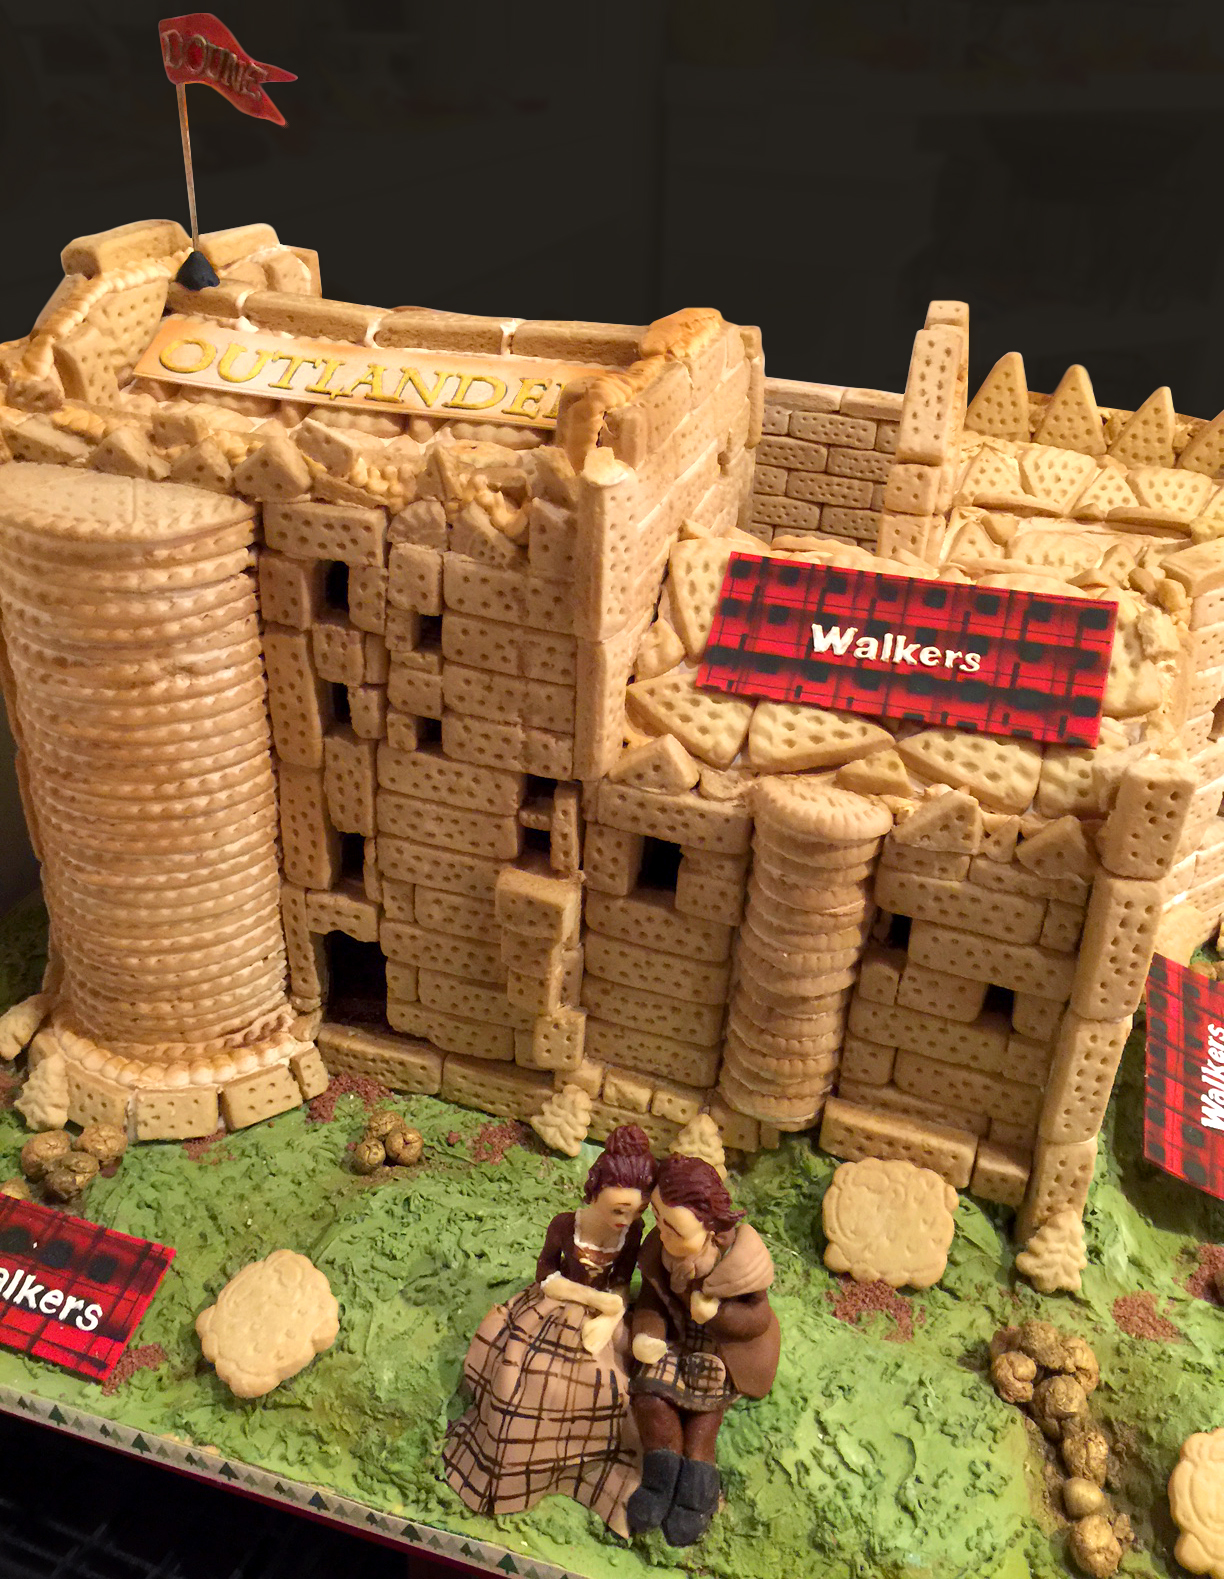 Outlander's Castle Leoch recreated out of Walkers shortbread